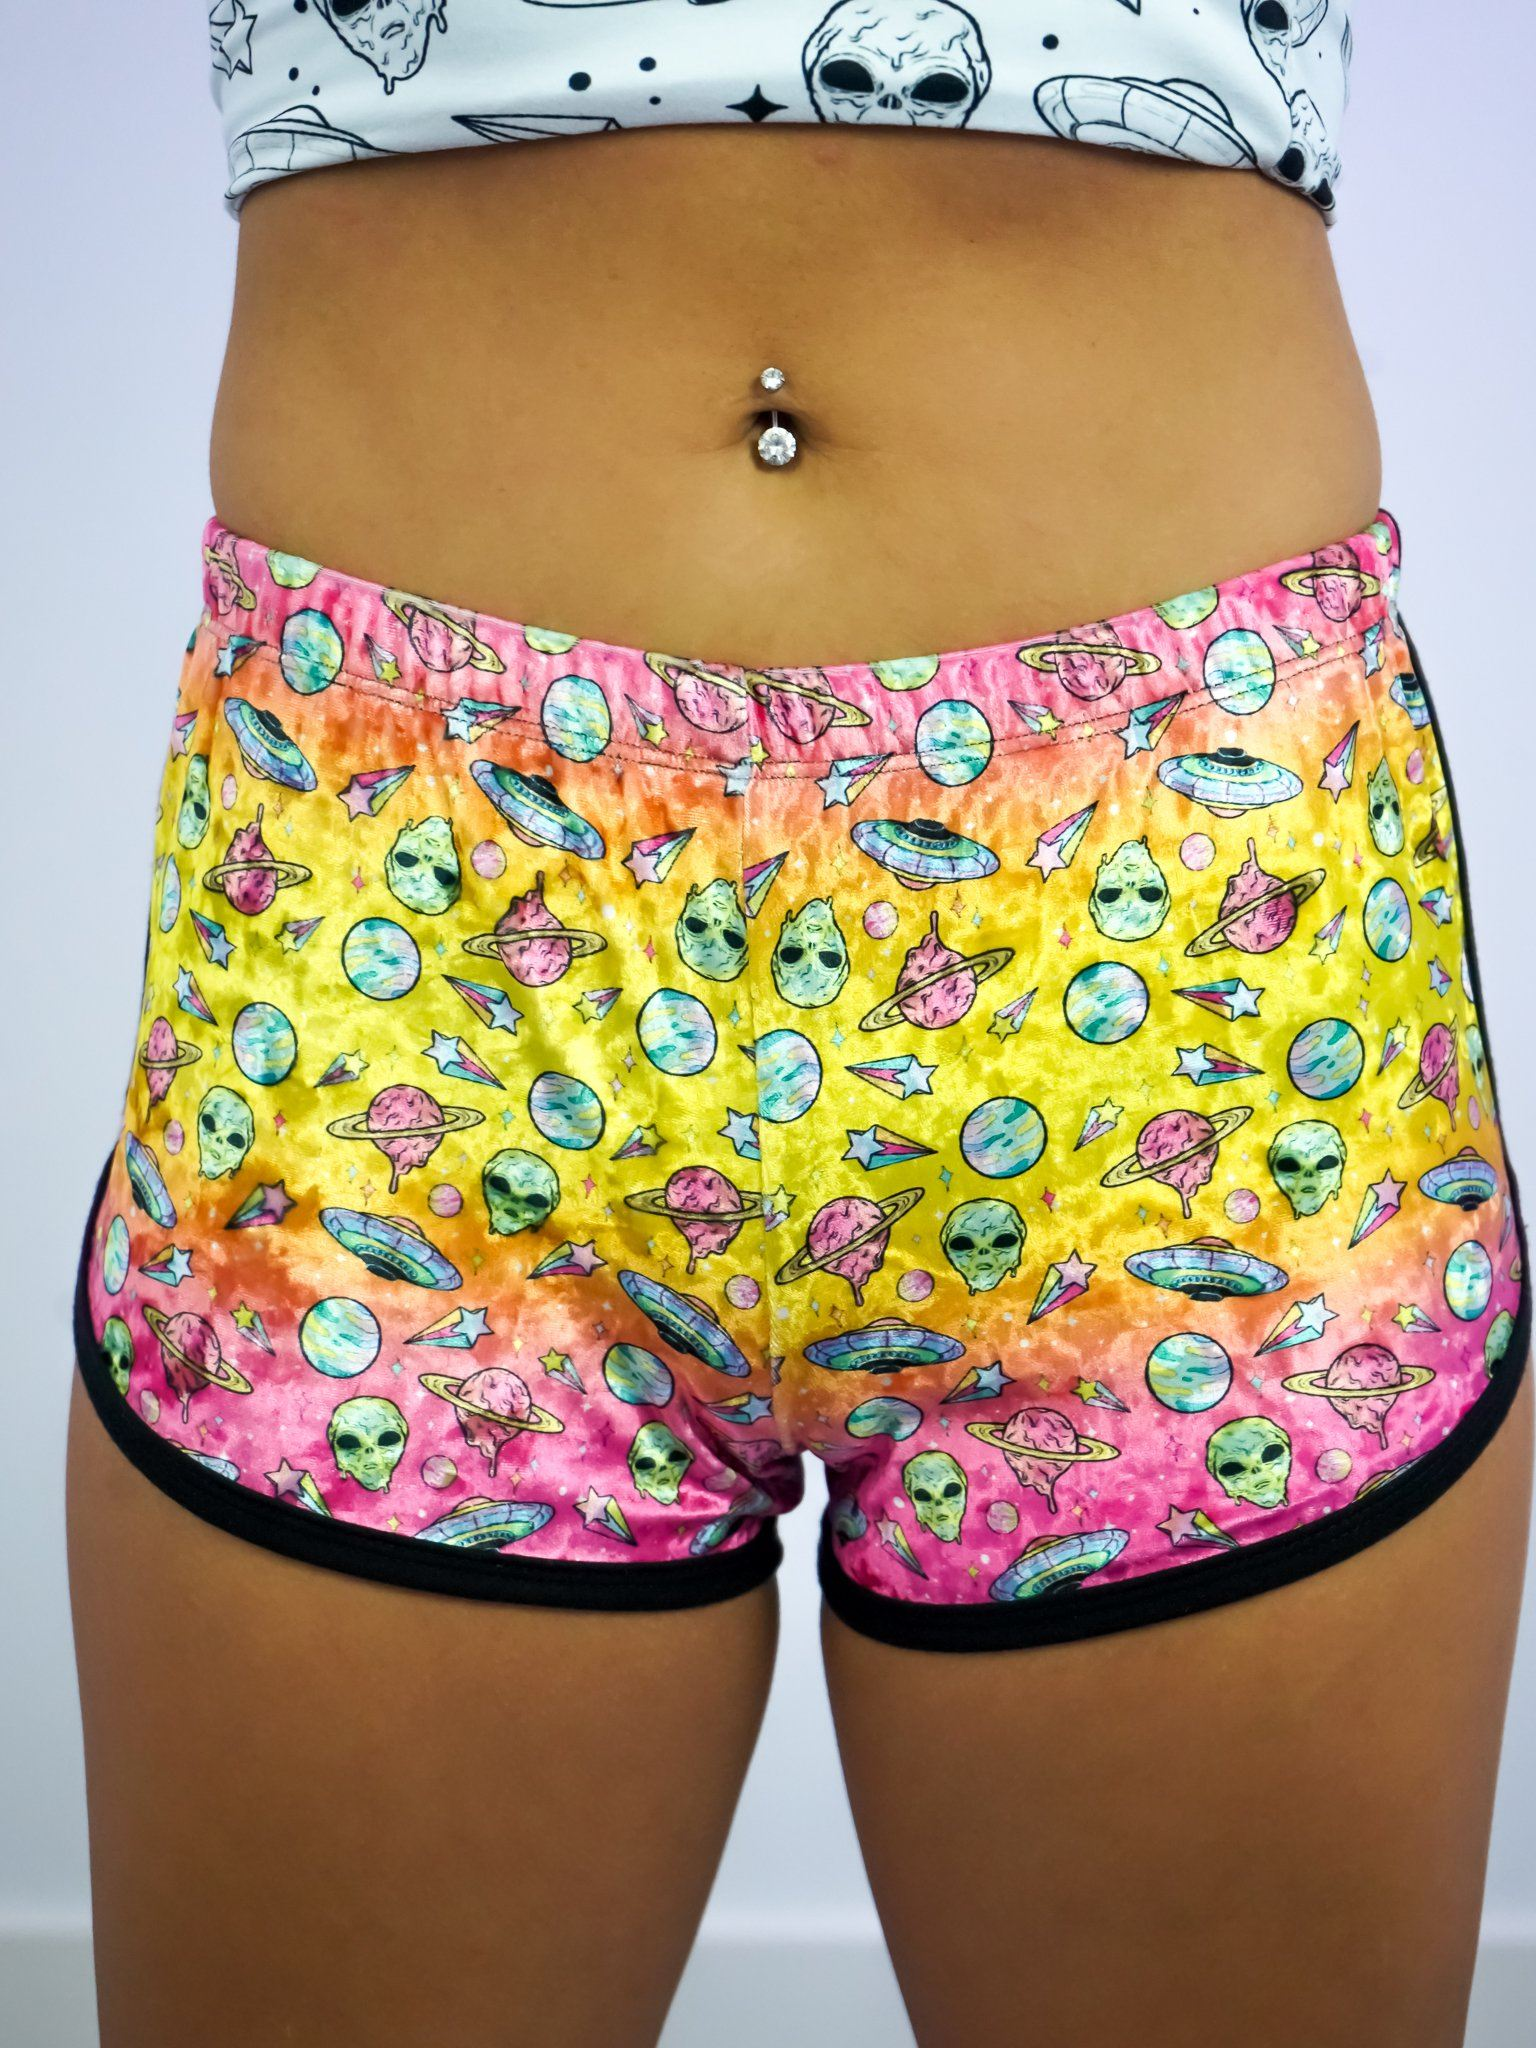 Neon Rainbow Space Retro Shorts Women's Shorts Electro Threads